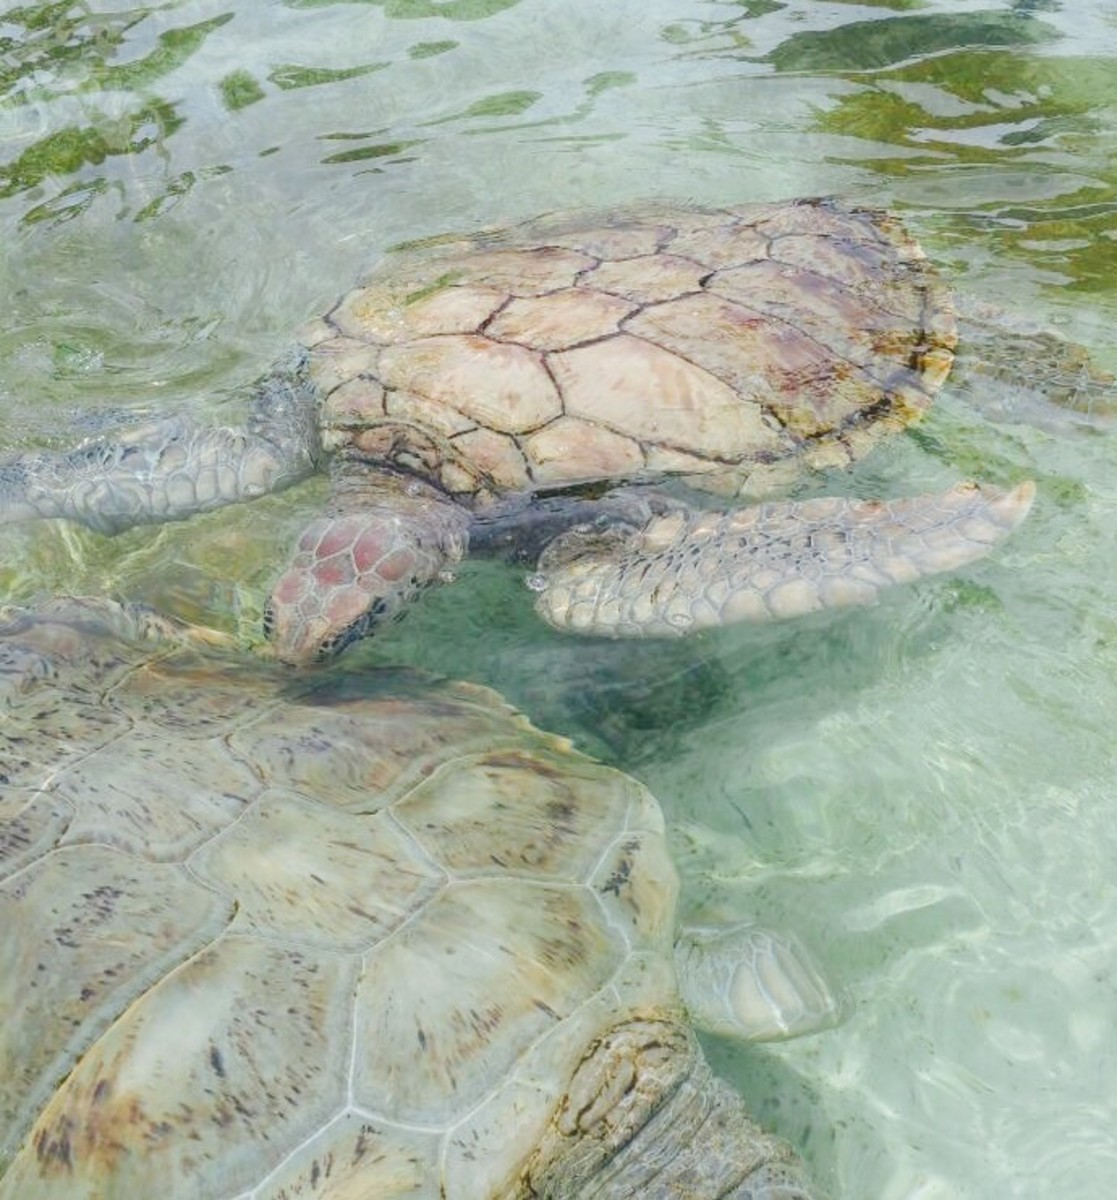 The Cayman Turtle Center is one of the best family activities in Grand Cayman